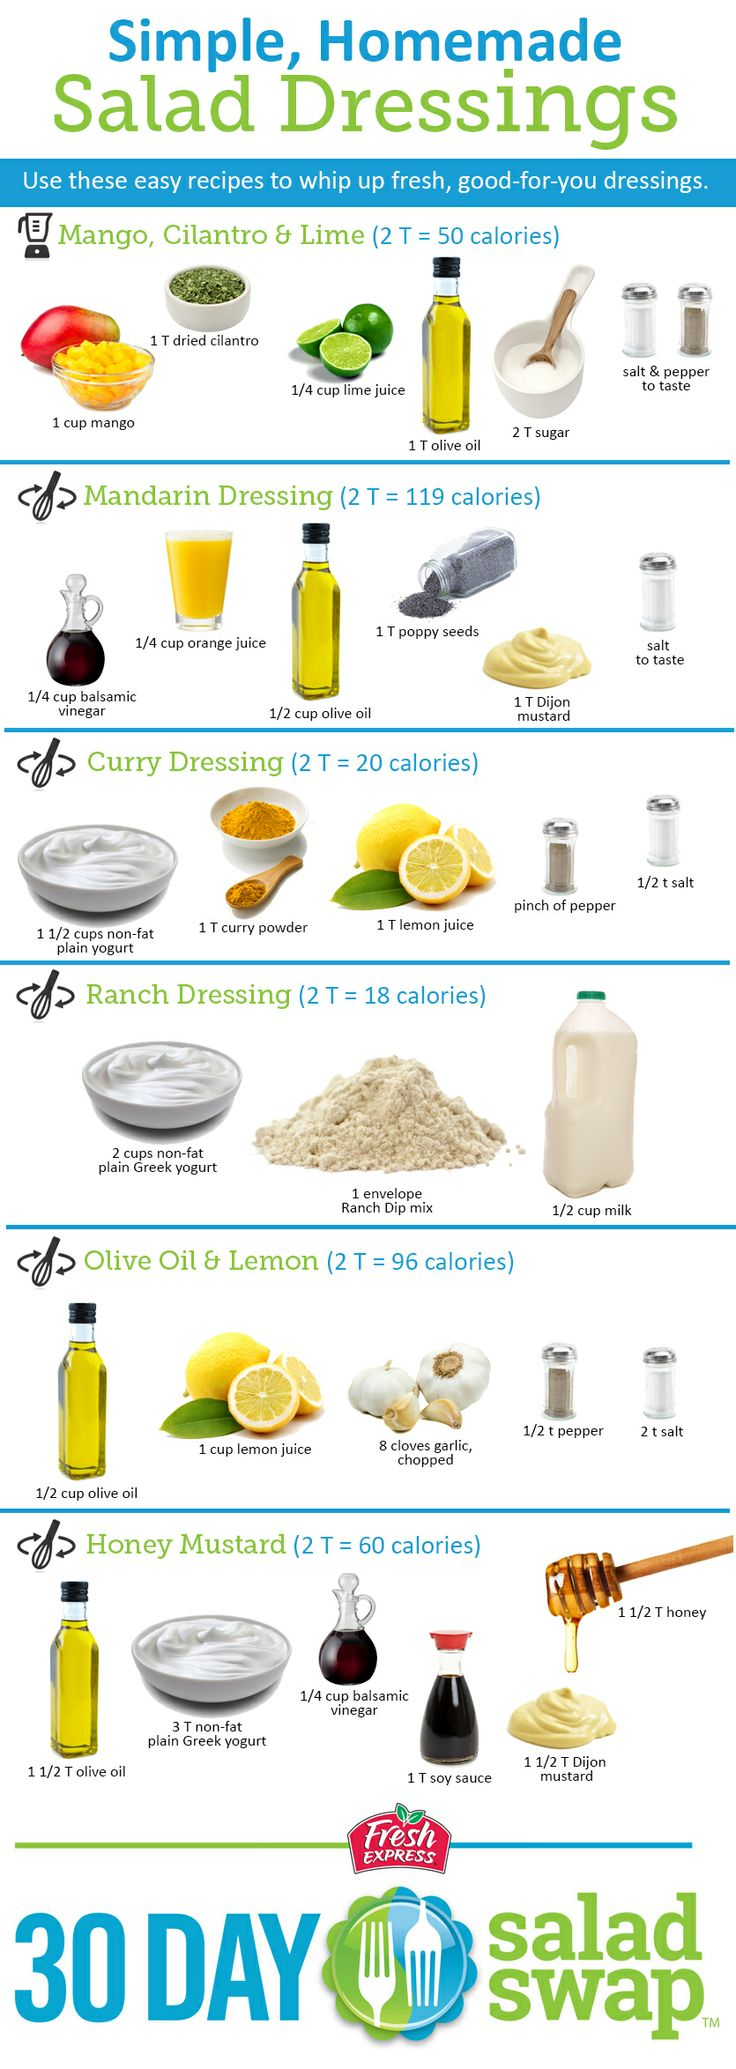 Simple, homemade salad dressings. #saladswap #FreshExpress http://www.saladswap.com/